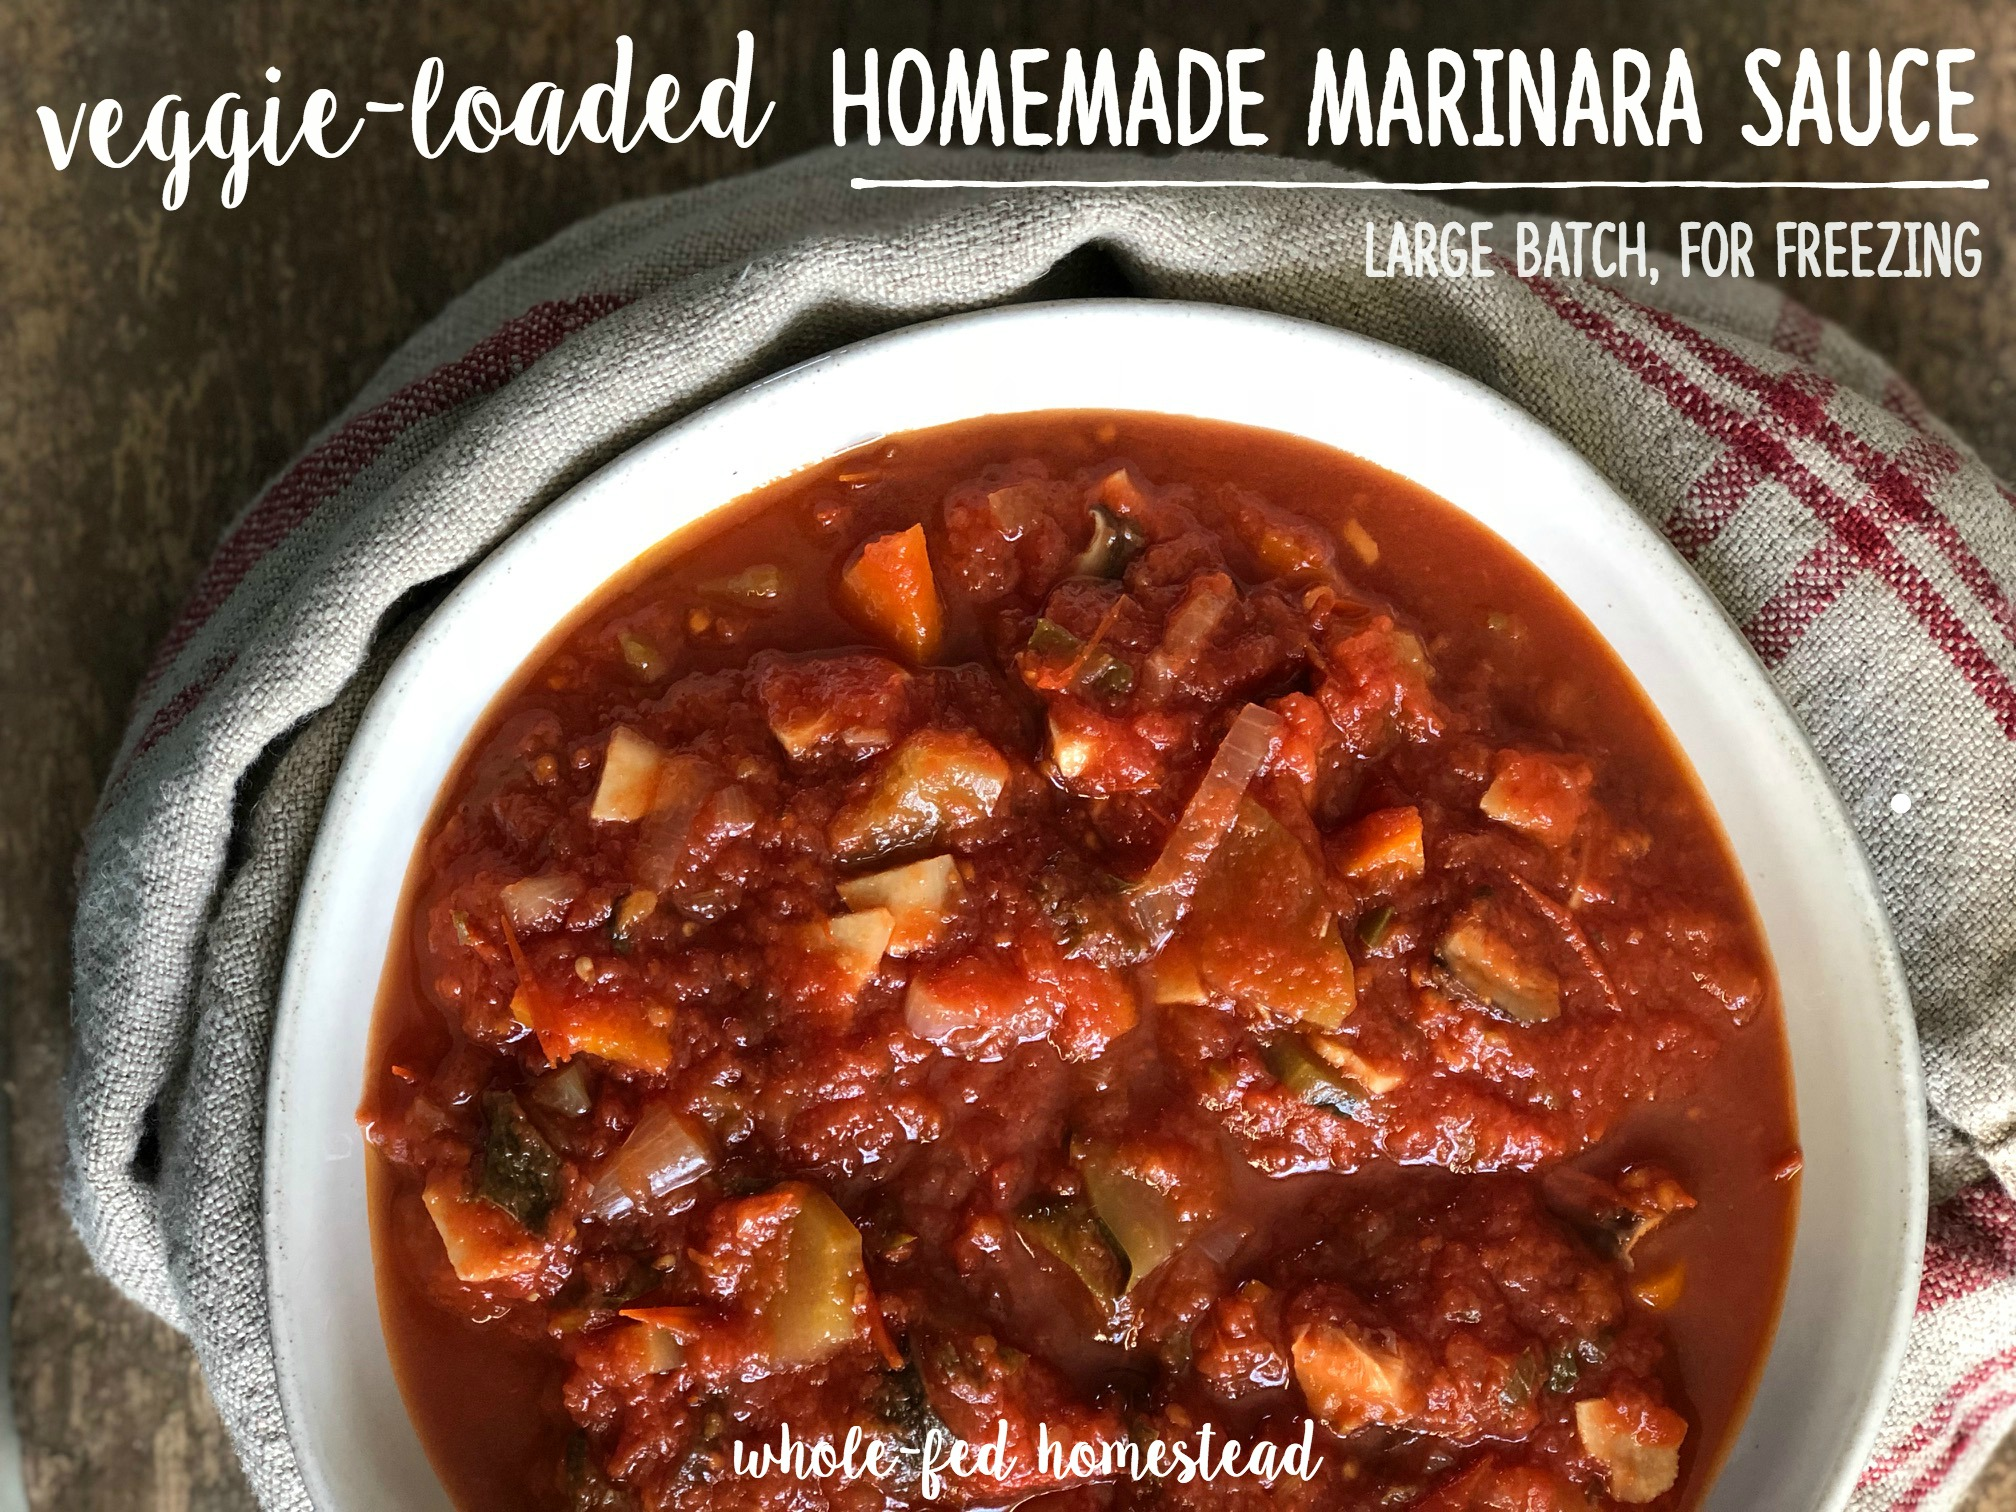 Veggie-Loaded Homemade Marinara Sauce (Large Batch for Freezing)